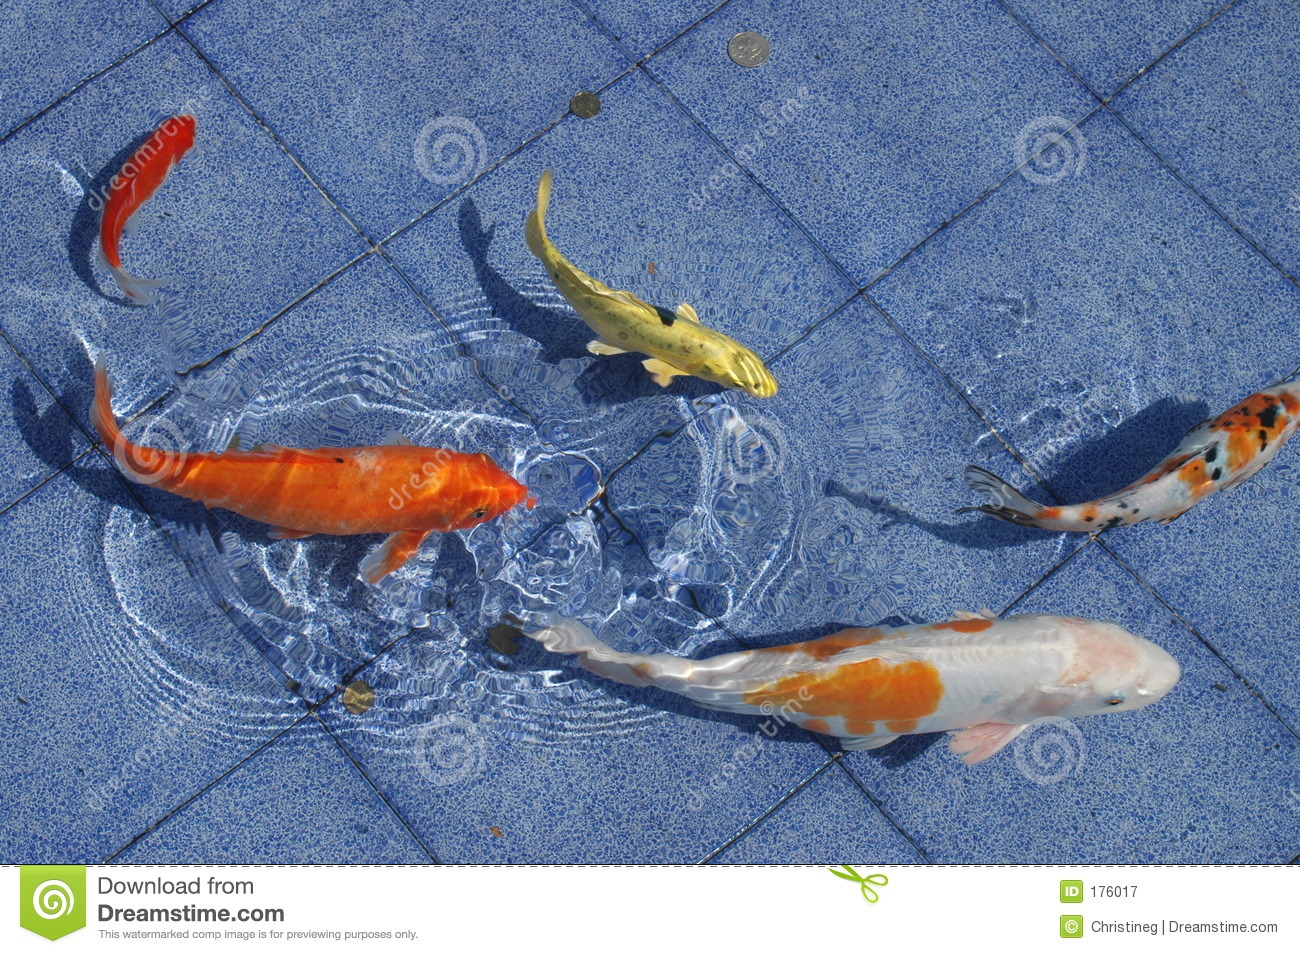 Koi Fish In A Blue Pool Royalty Free Stock Photography